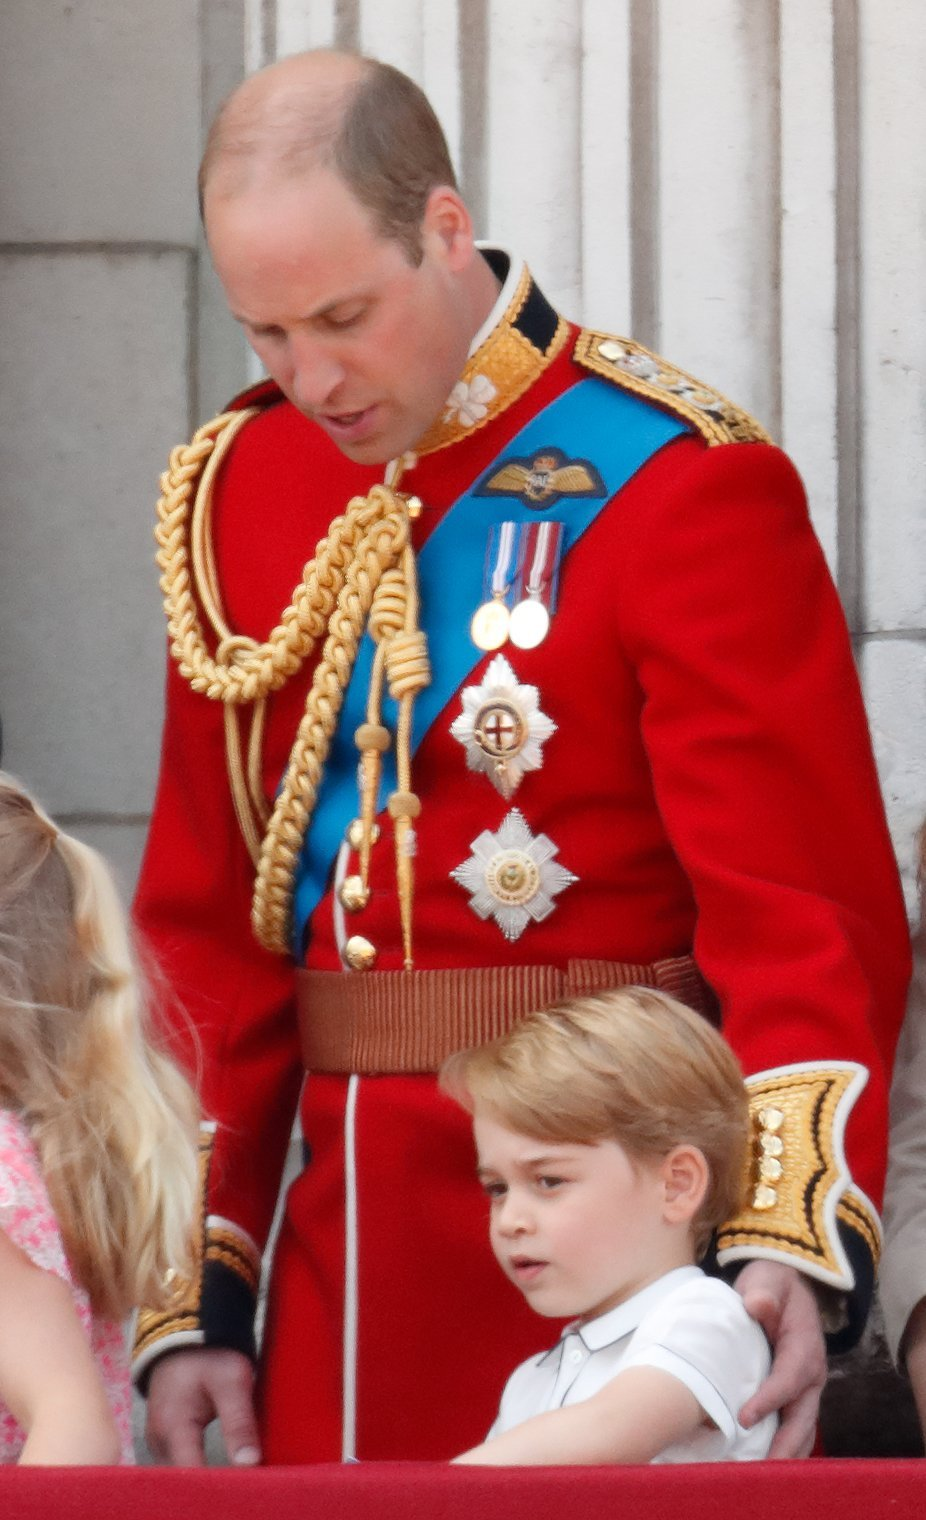 Prince William and Prince George of Cambridge at the 2018 Trooping The Color | Photo: Getty Images